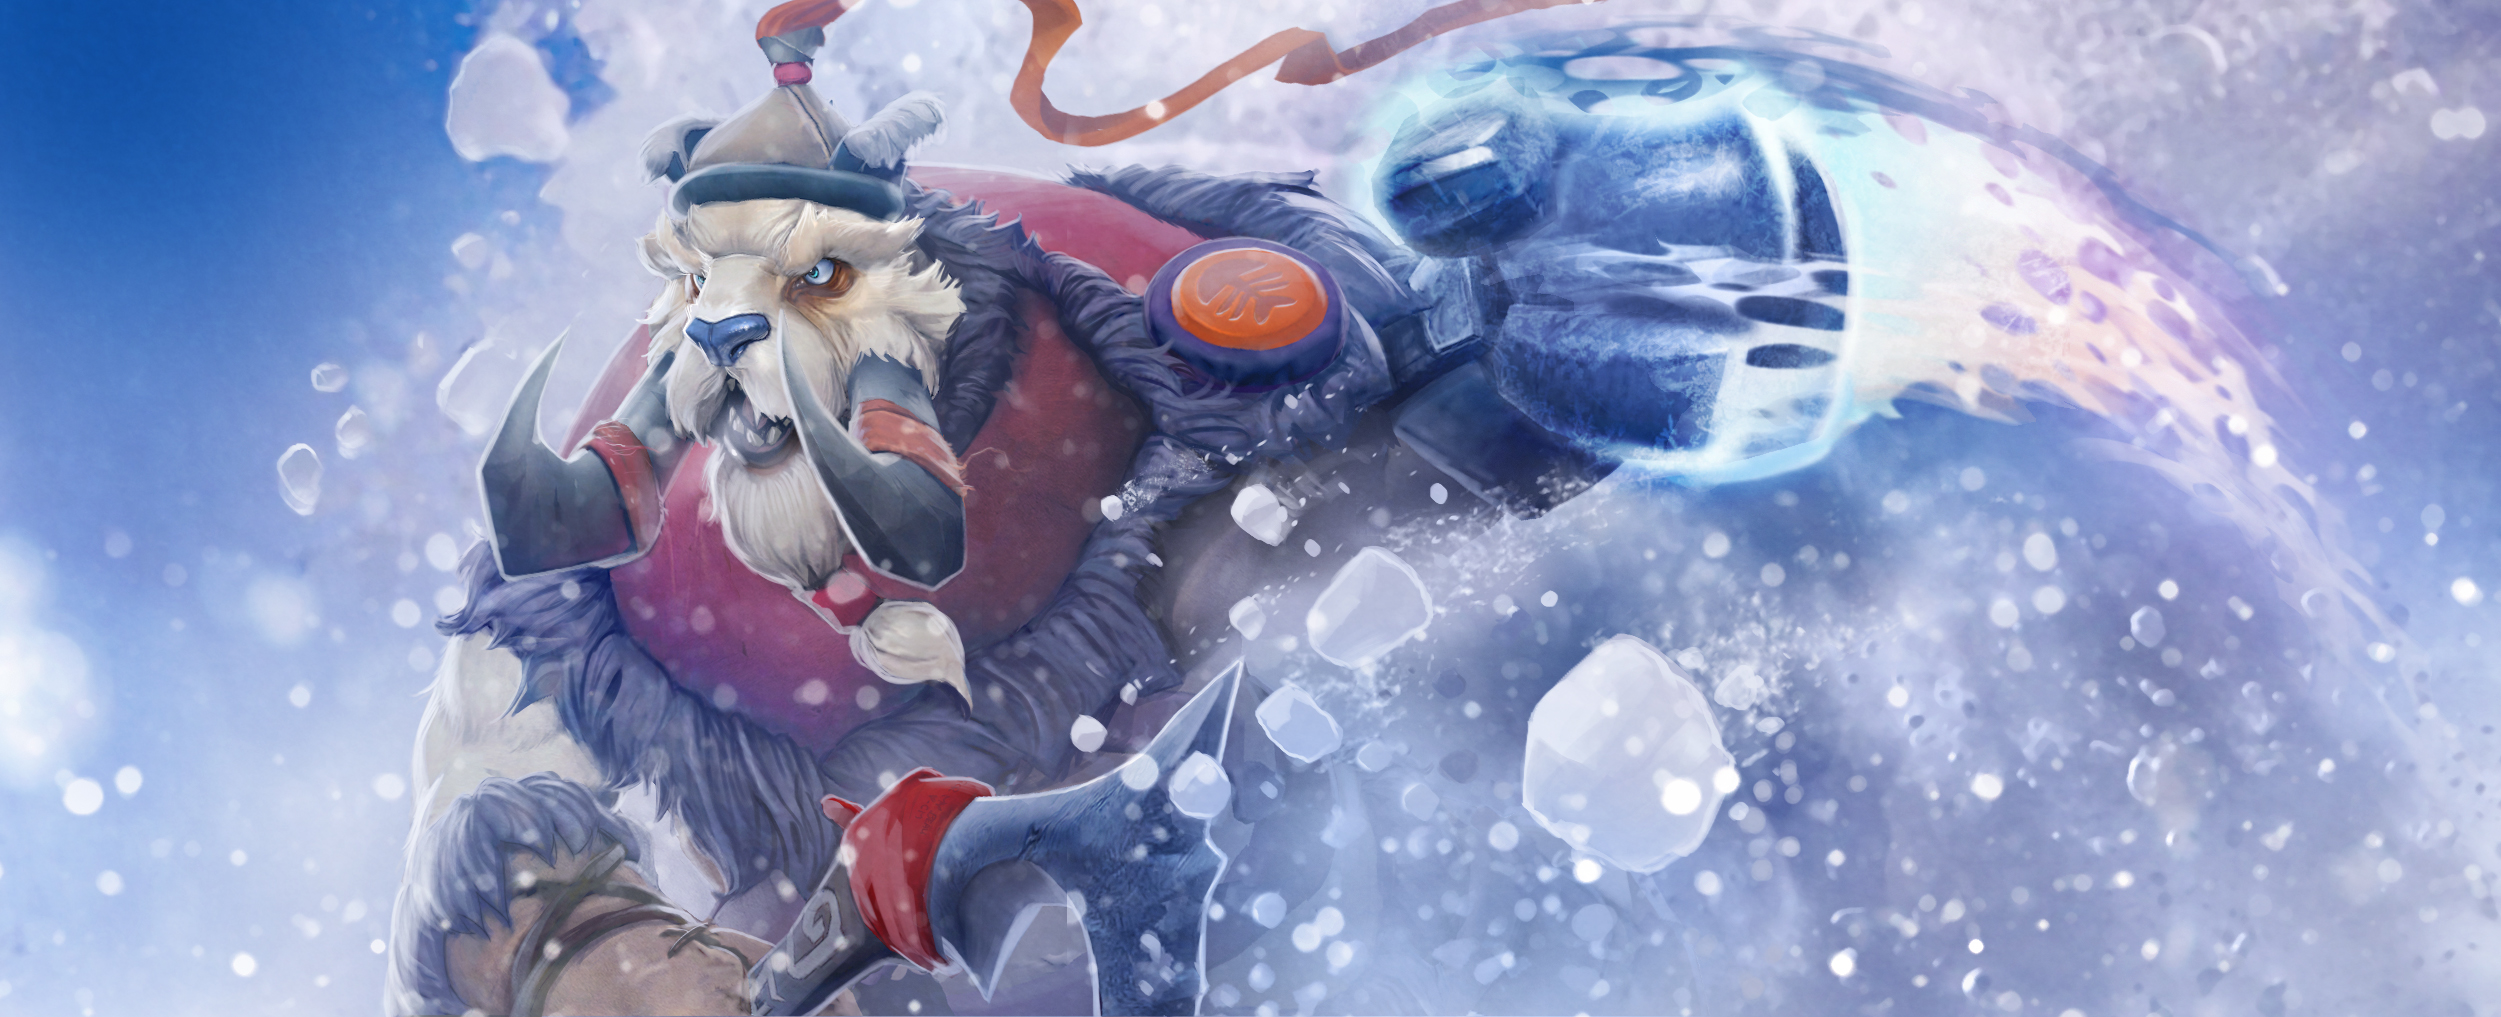 Highlighted Hero Discussion Of This Week Tusk Ymir 4 November 2014 DotA2